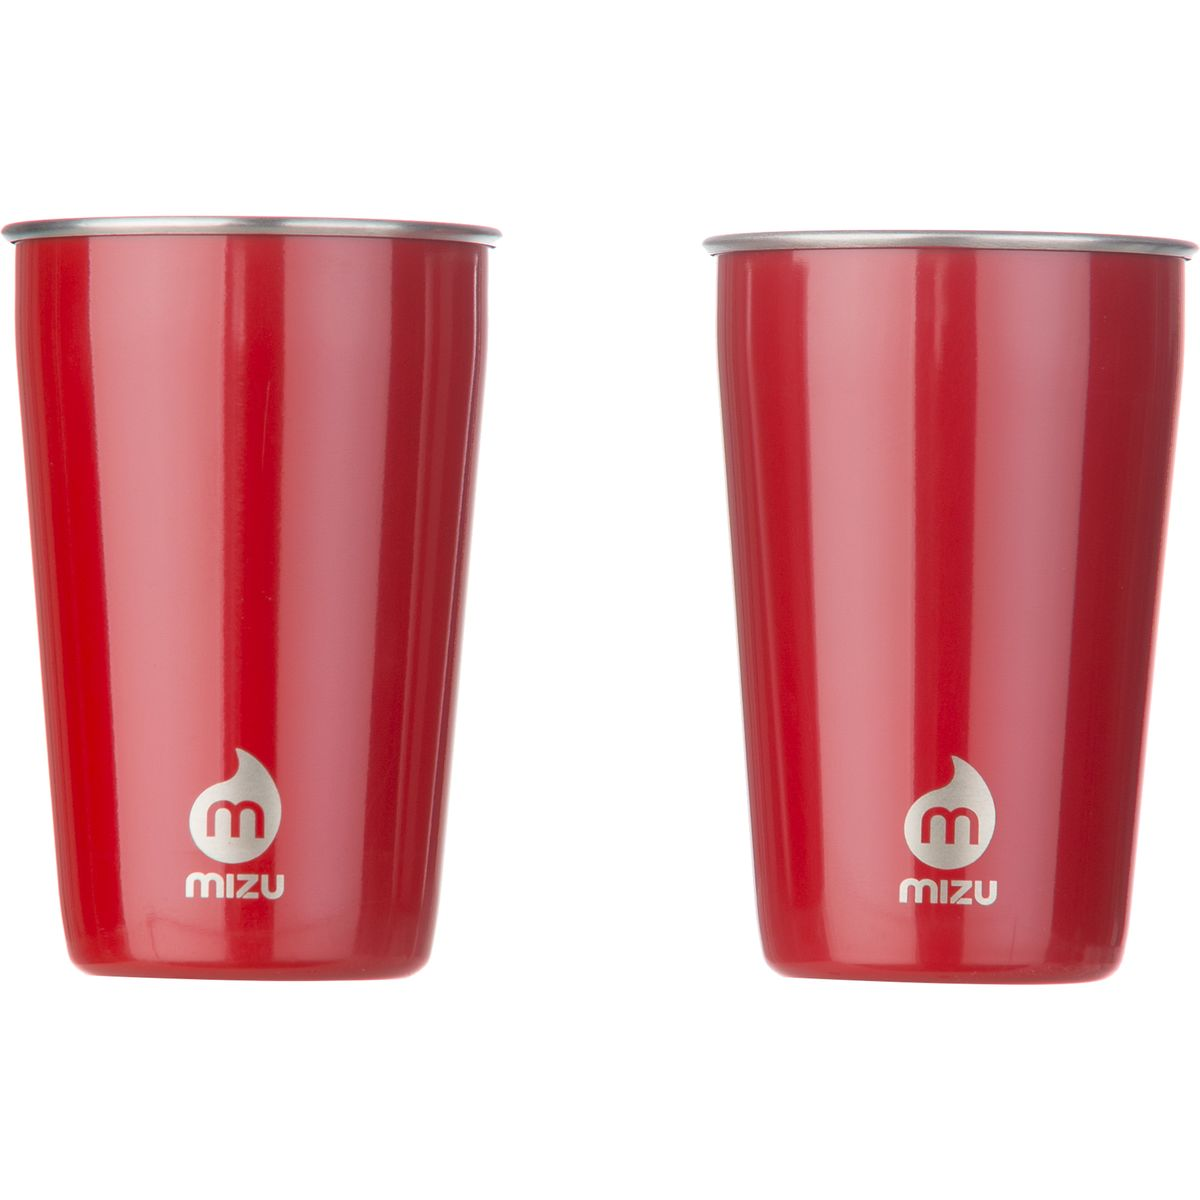 MIZU Party Cup Set Glossy Red, One Size